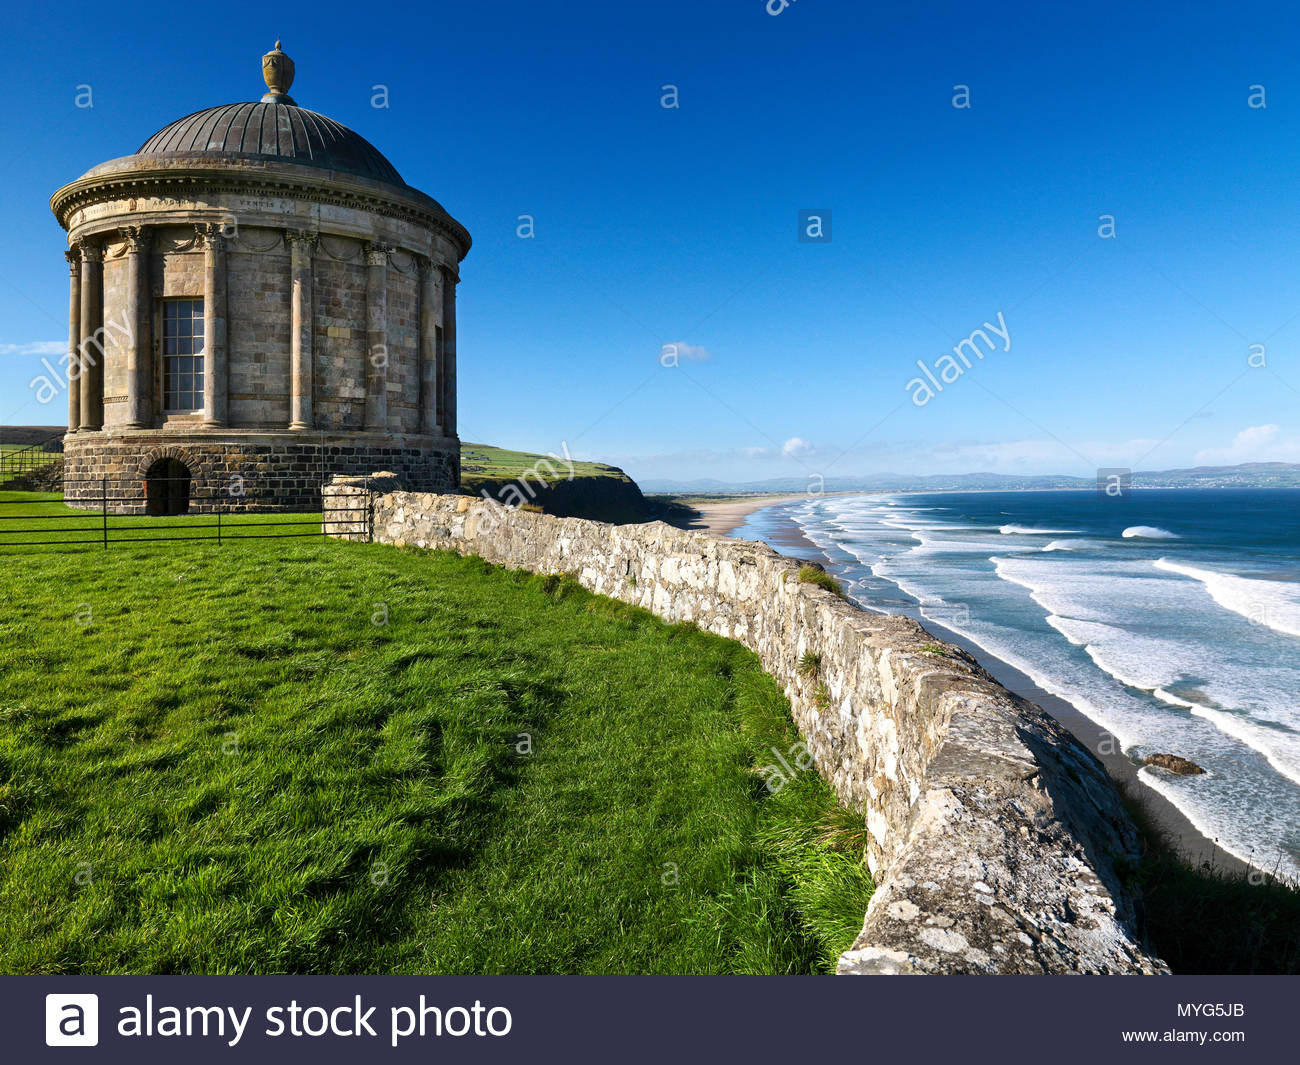 Folly temple on cliff edge overlooking the ocean. - Stock Image